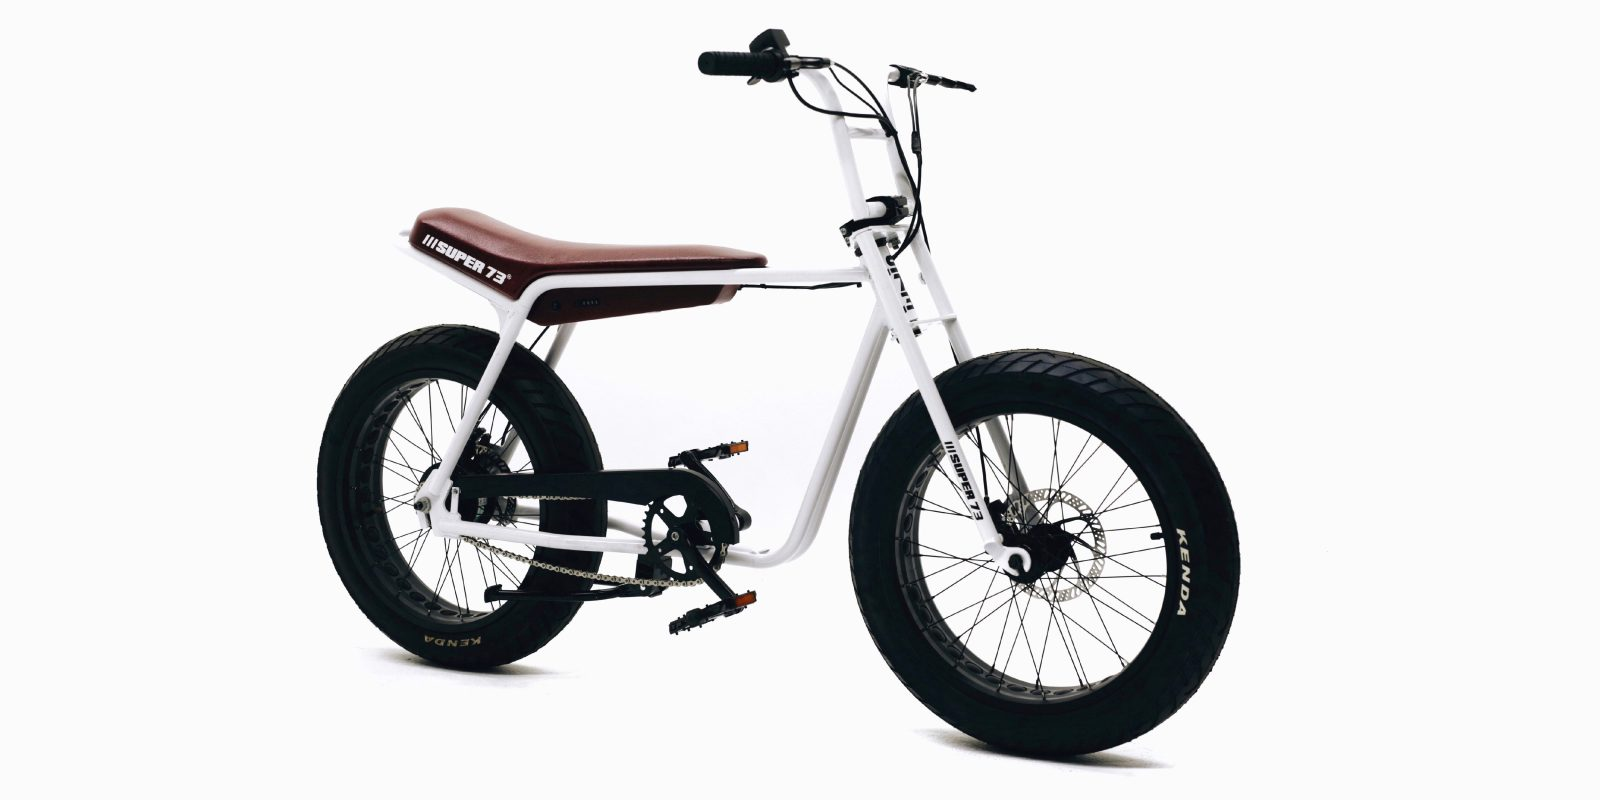 Super 73 Bike >> Lithium Cycles Unveils New Minibike Styled Electric Bicycle For